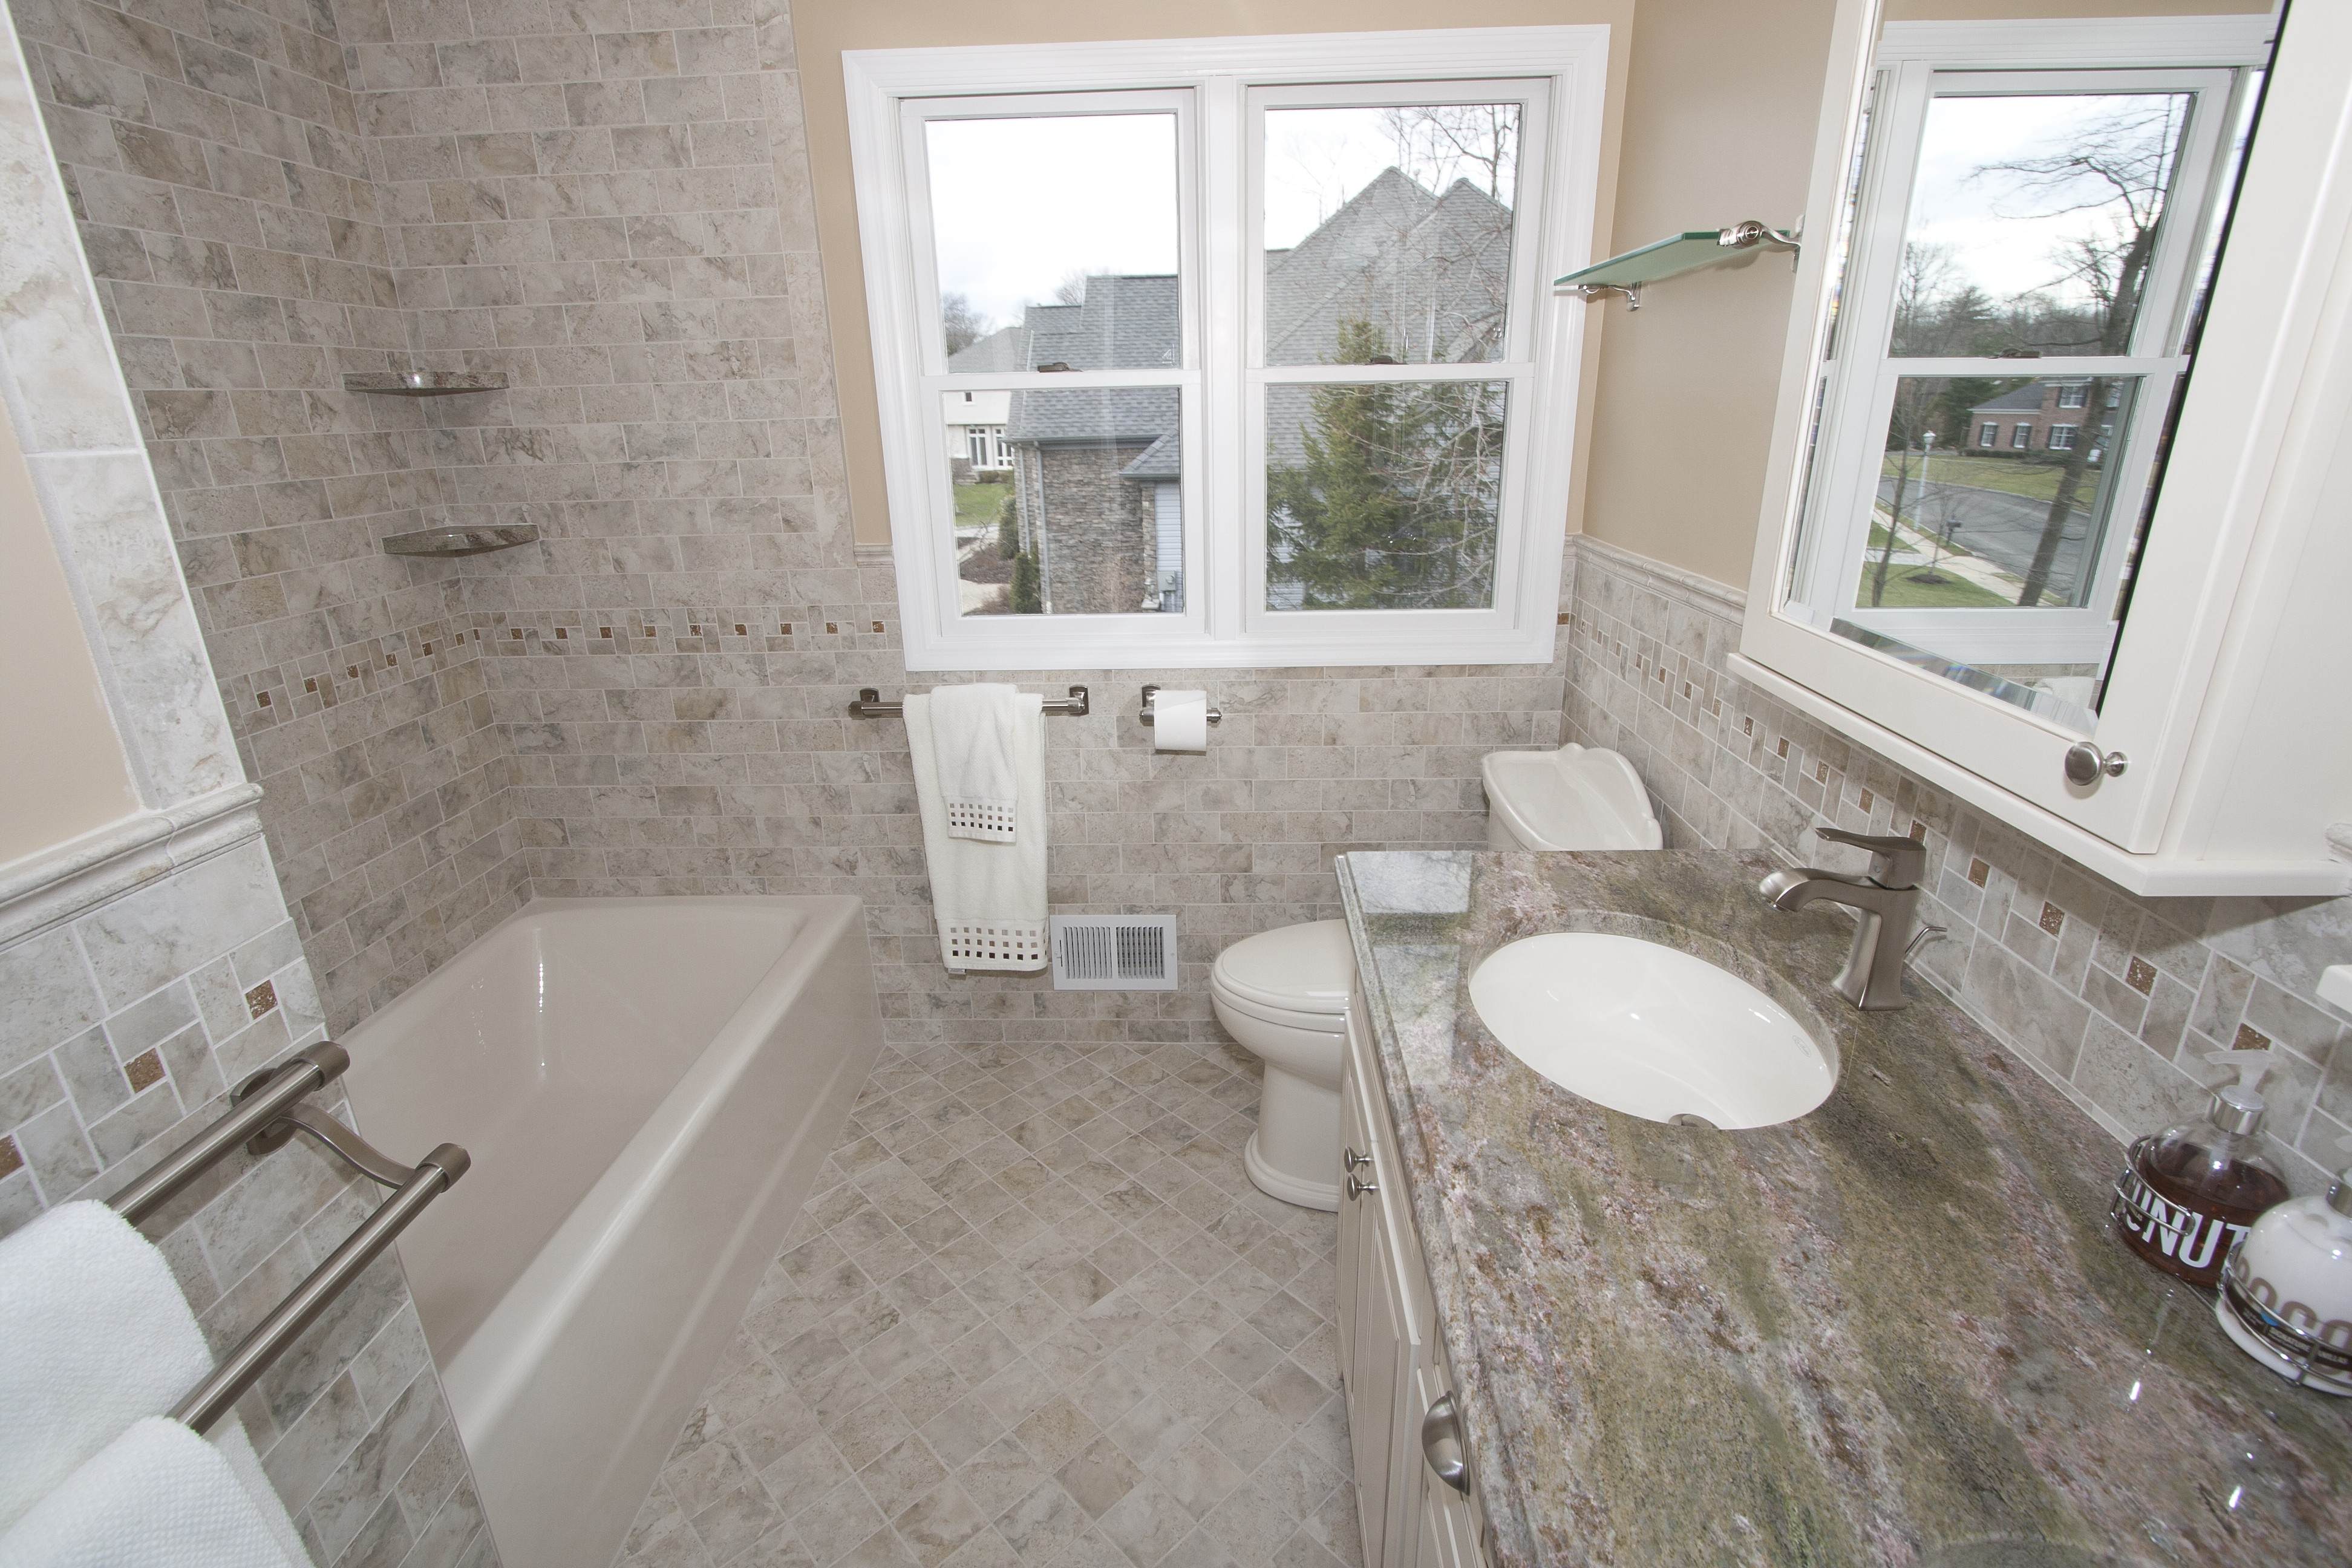 Monmouth county nj master bathroom remodel estimates - Bathroom design nj ...